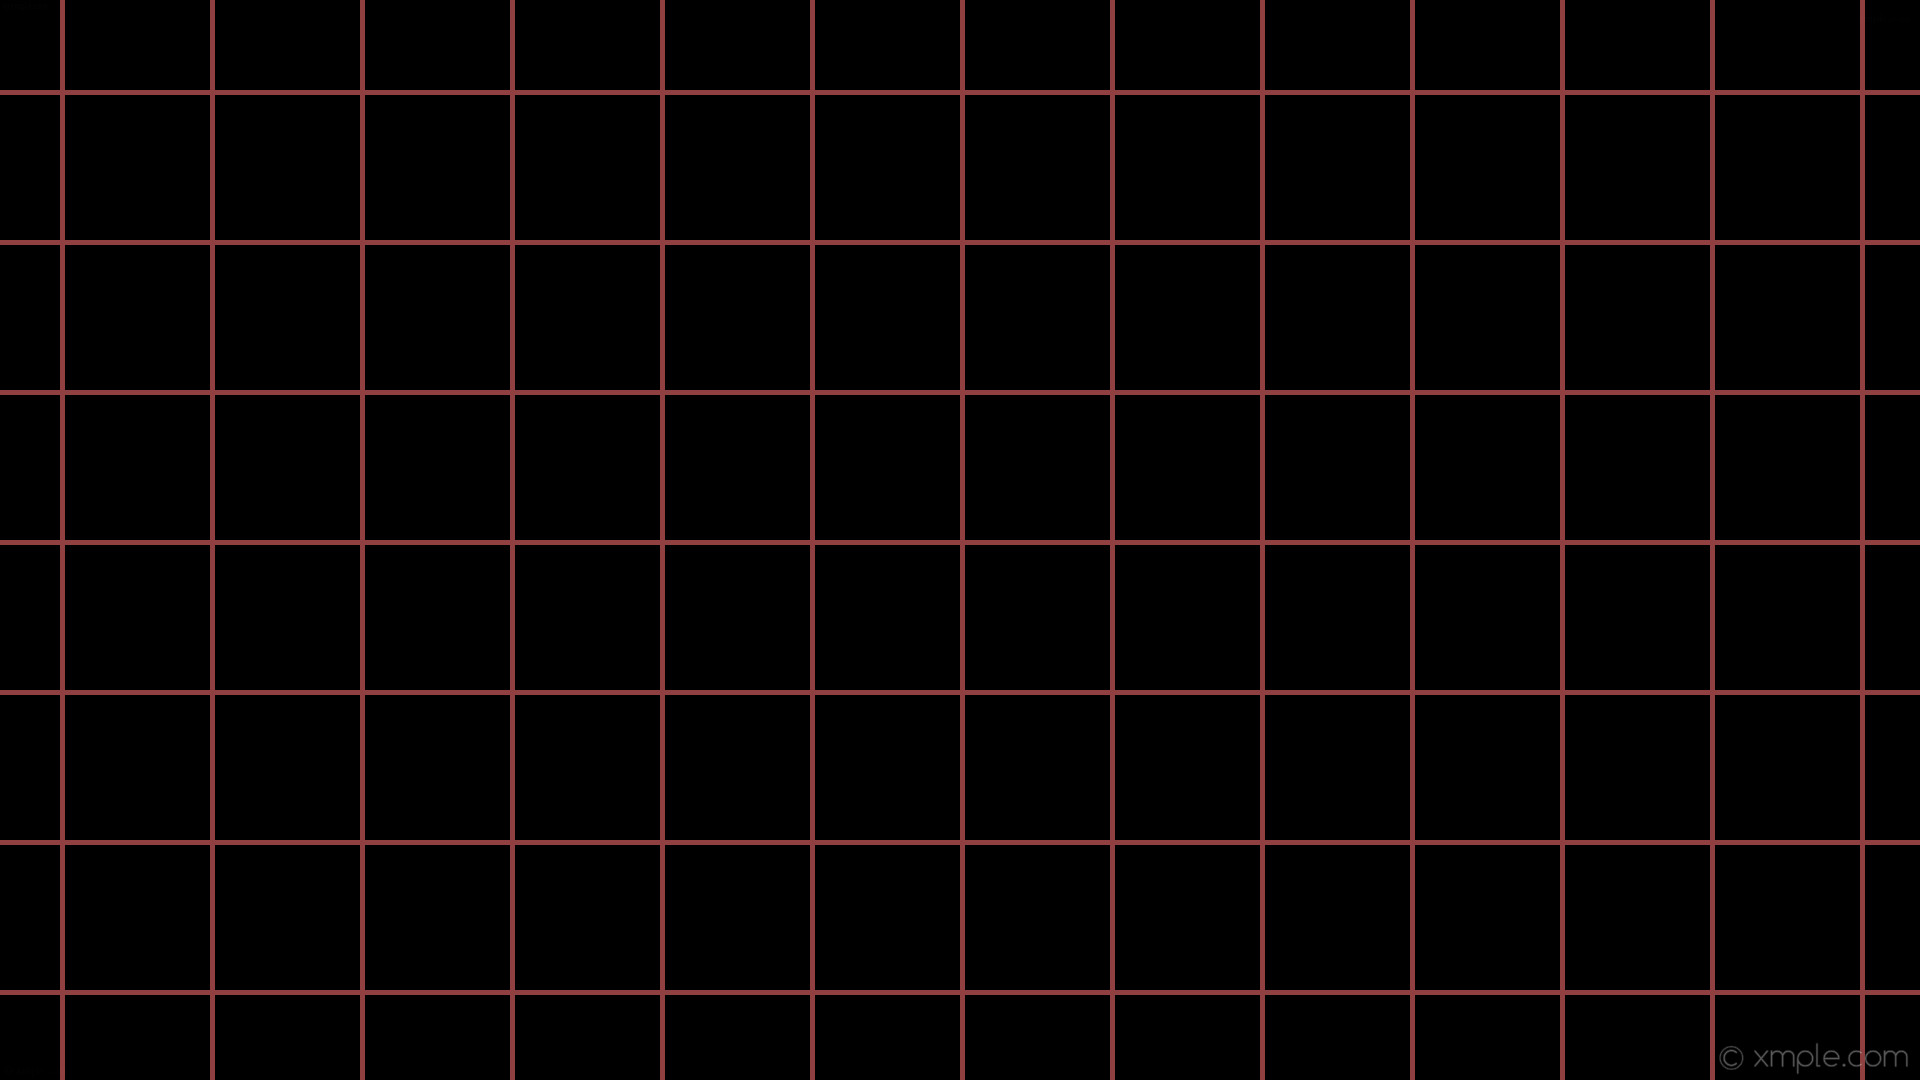 Res: 1920x1080, wallpaper graph paper red black grid indian red #000000 #cd5c5c 0° 5px 150px